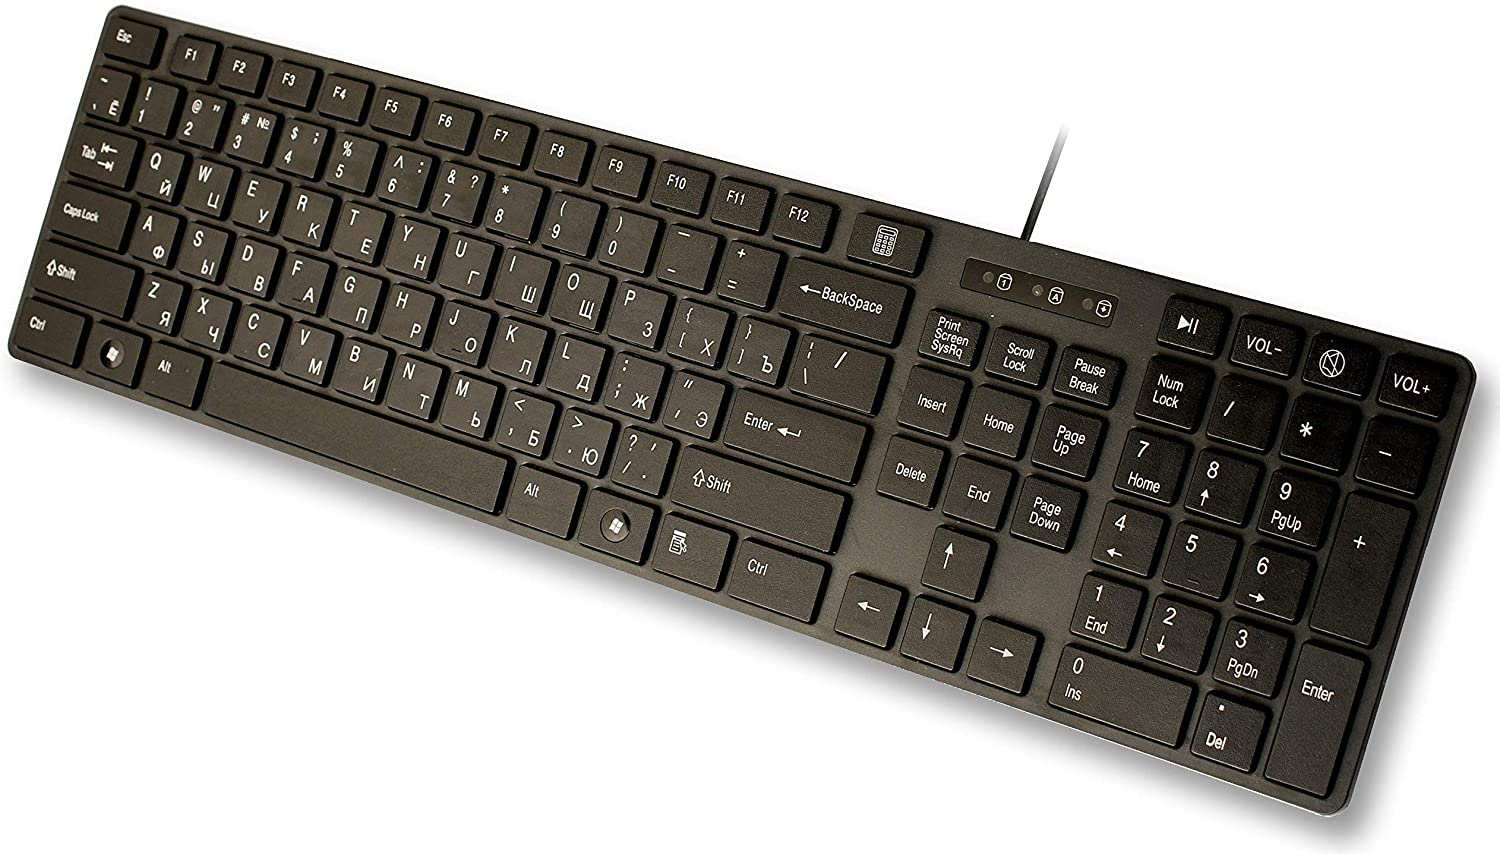 USB Keyboard with Russian English (Cyrillic) Letters/Characters- Full Size Slim Desktop Design